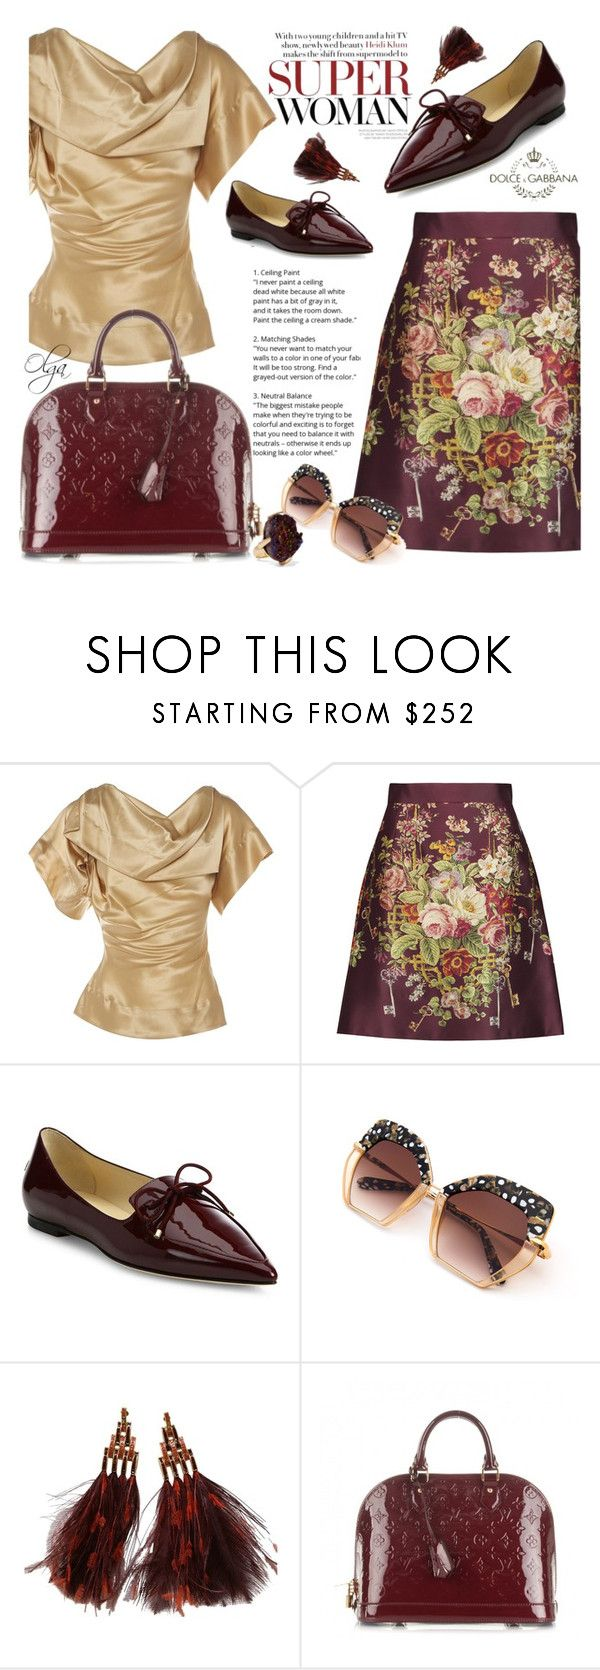 """""""Woman and the City 1"""" by olga1402 on Polyvore featuring Vivienne Westwood, Dolce&Gabbana, Jimmy Choo, Louis Vuitton, Christopher Kane, dolceandgabbana and floralskirt"""